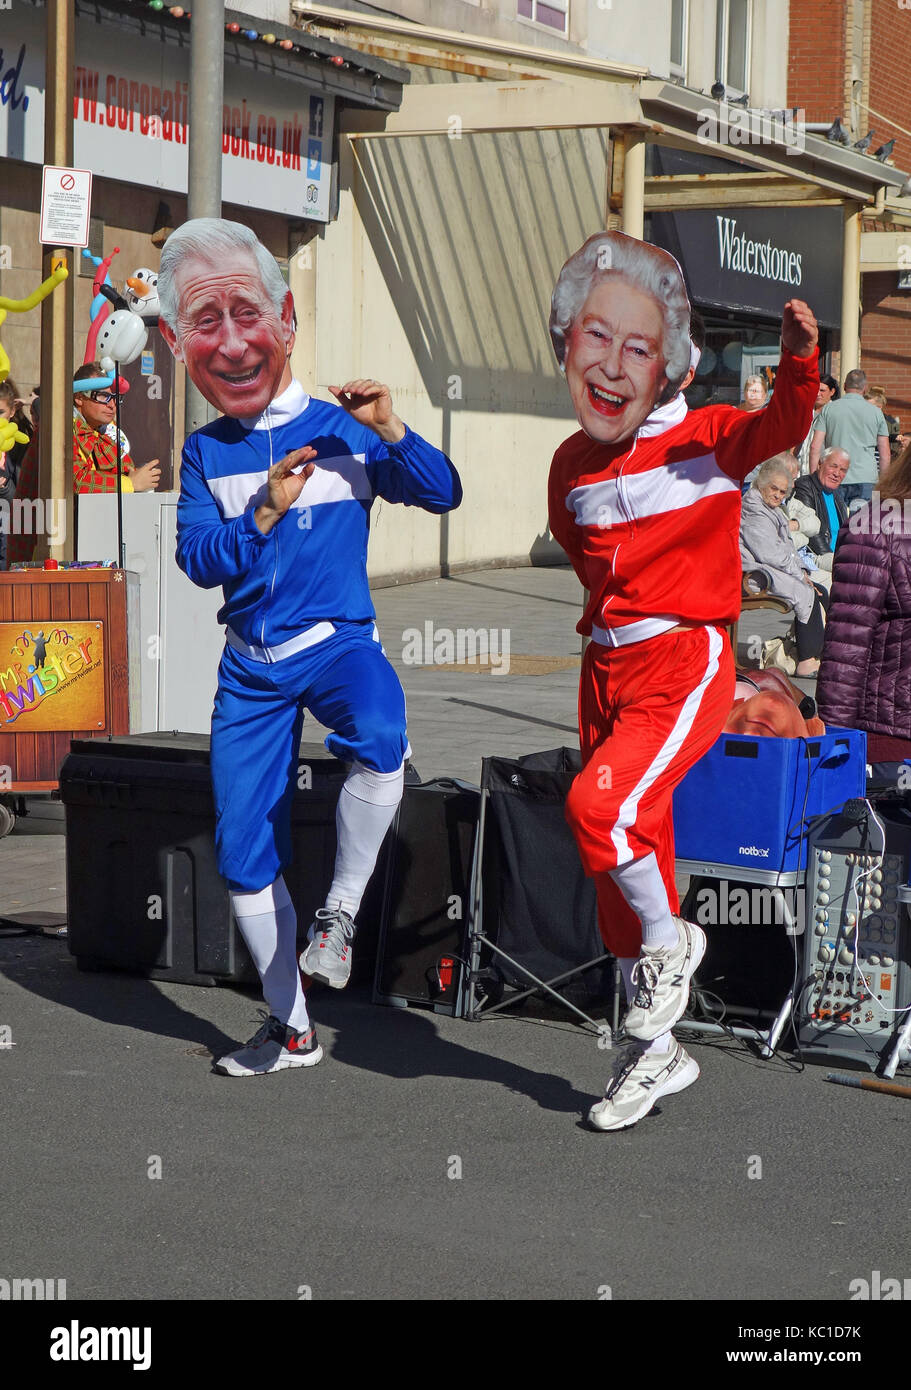 street entertainers imitating the queen and prince charles. - Stock Image